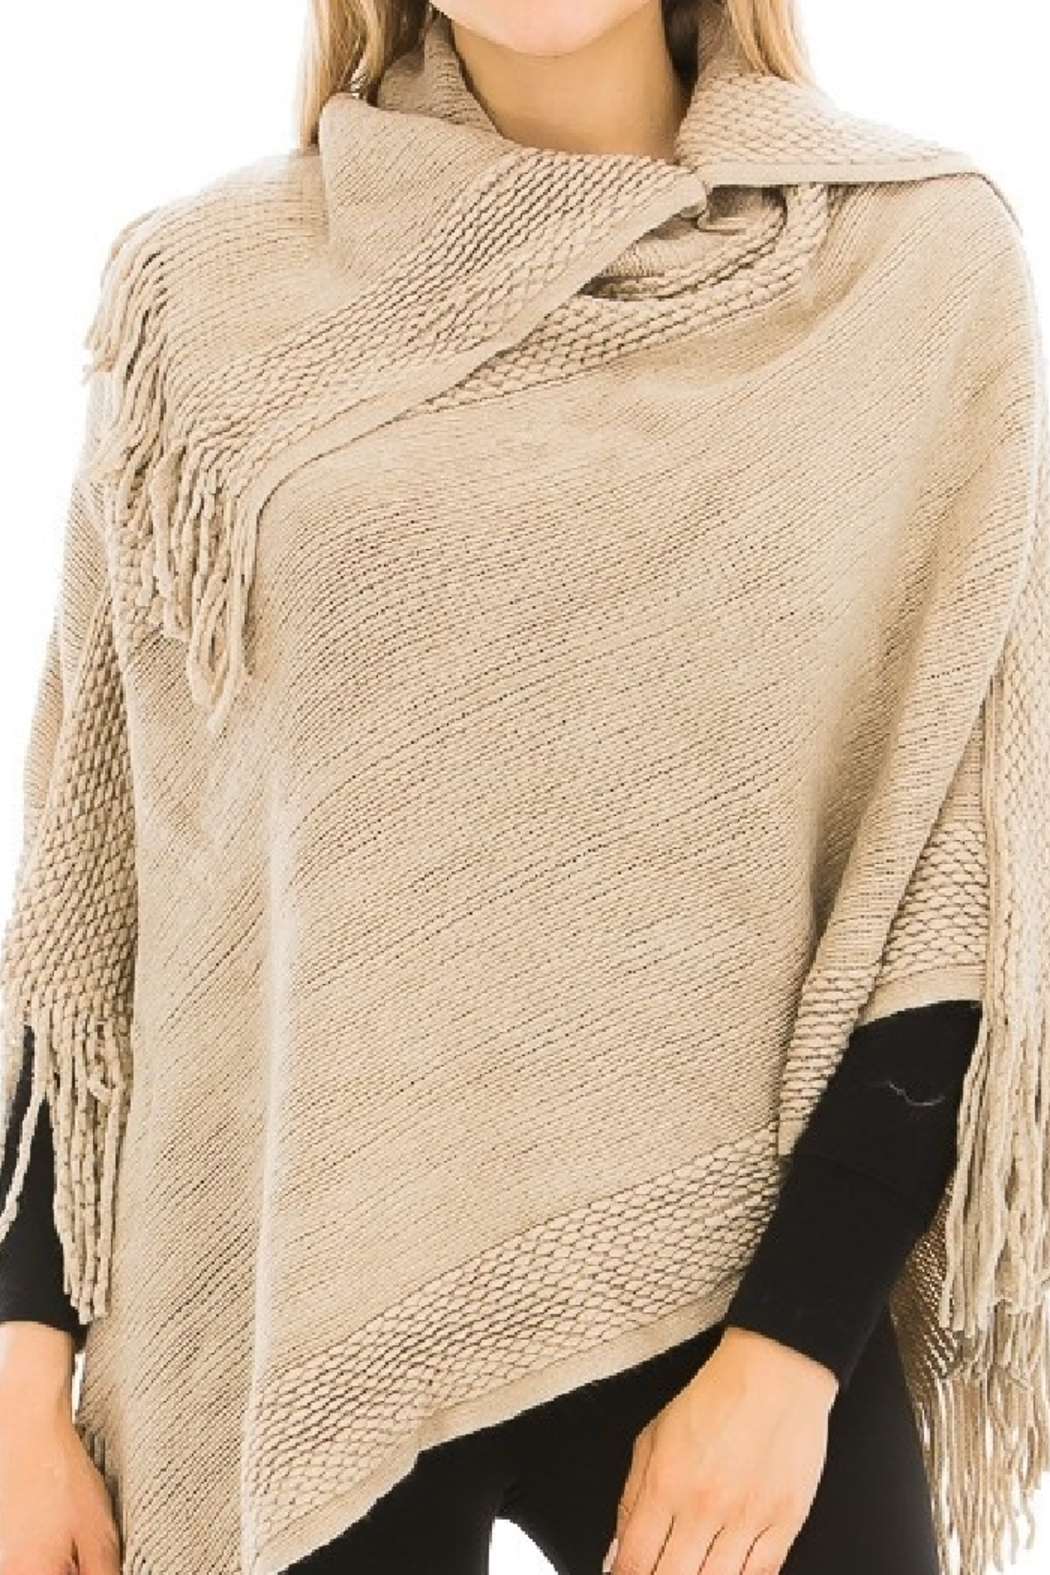 Cap Zone Fringed Knit Beige Poncho - Main Image